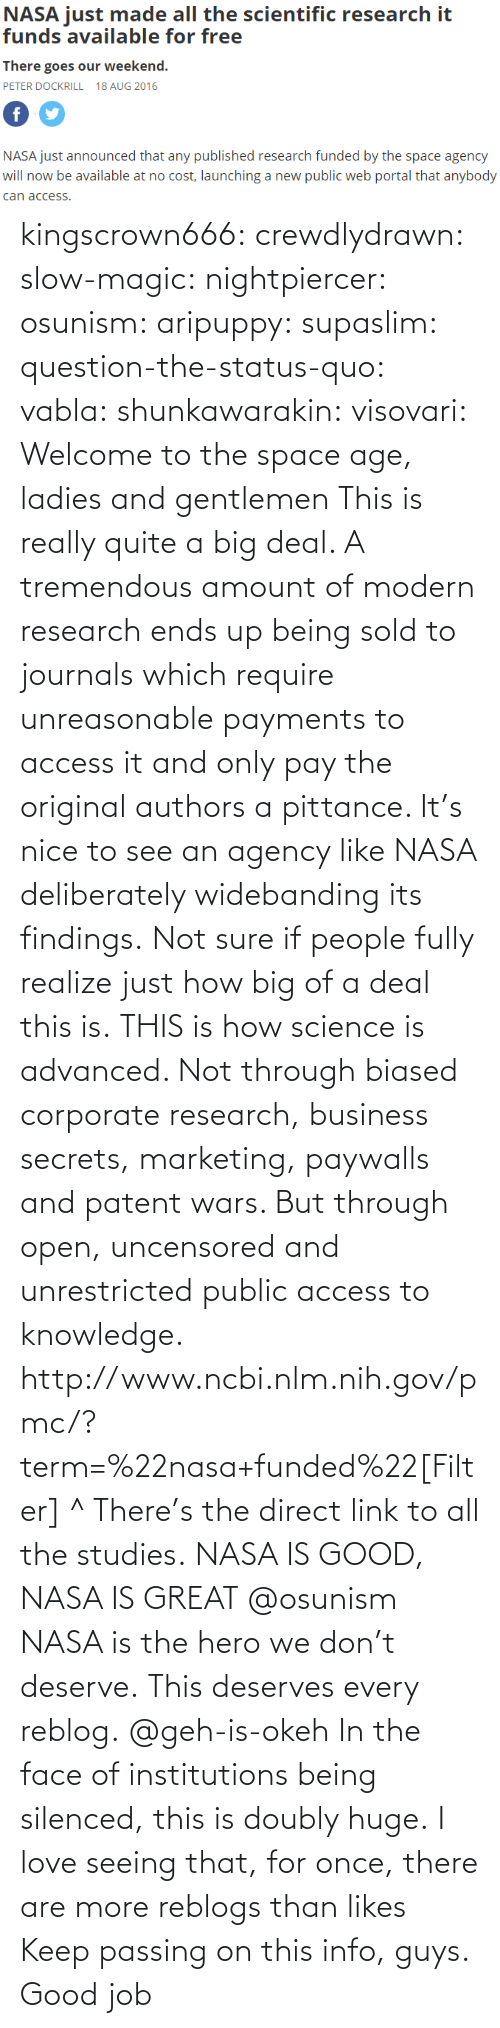 Love, Nasa, and Target: NASA just mde alll the sciemtiic research i  funds available for free  There goes our weekend.  PETER DOCKRILL 18 AUG 2016  NASA just announced that any published research funded by the space agency  will now be available at no cost, launching a new public web portal that anybody  can access kingscrown666: crewdlydrawn:  slow-magic:   nightpiercer:  osunism:  aripuppy:   supaslim:  question-the-status-quo:  vabla:  shunkawarakin:  visovari:  Welcome to the space age, ladies and gentlemen  This is really quite a big deal. A tremendous amount of modern research ends up being sold to journals which require unreasonable payments to access it and only pay the original authors a pittance. It's nice to see an agency like NASA deliberately widebanding its findings.  Not sure if people fully realize just how big of a deal this is.  THIS is how science is advanced. Not through biased corporate research, business secrets, marketing, paywalls and patent wars. But through open, uncensored and unrestricted public access to knowledge.  http://www.ncbi.nlm.nih.gov/pmc/?term=%22nasa+funded%22[Filter] ^ There's the direct link to all the studies.  NASA IS GOOD, NASA IS GREAT  @osunism   NASA is the hero we don't deserve.   This deserves every reblog.  @geh-is-okeh   In the face of institutions being silenced, this is doubly huge.   I love seeing that, for once, there are more reblogs than likes Keep passing on this info, guys. Good job